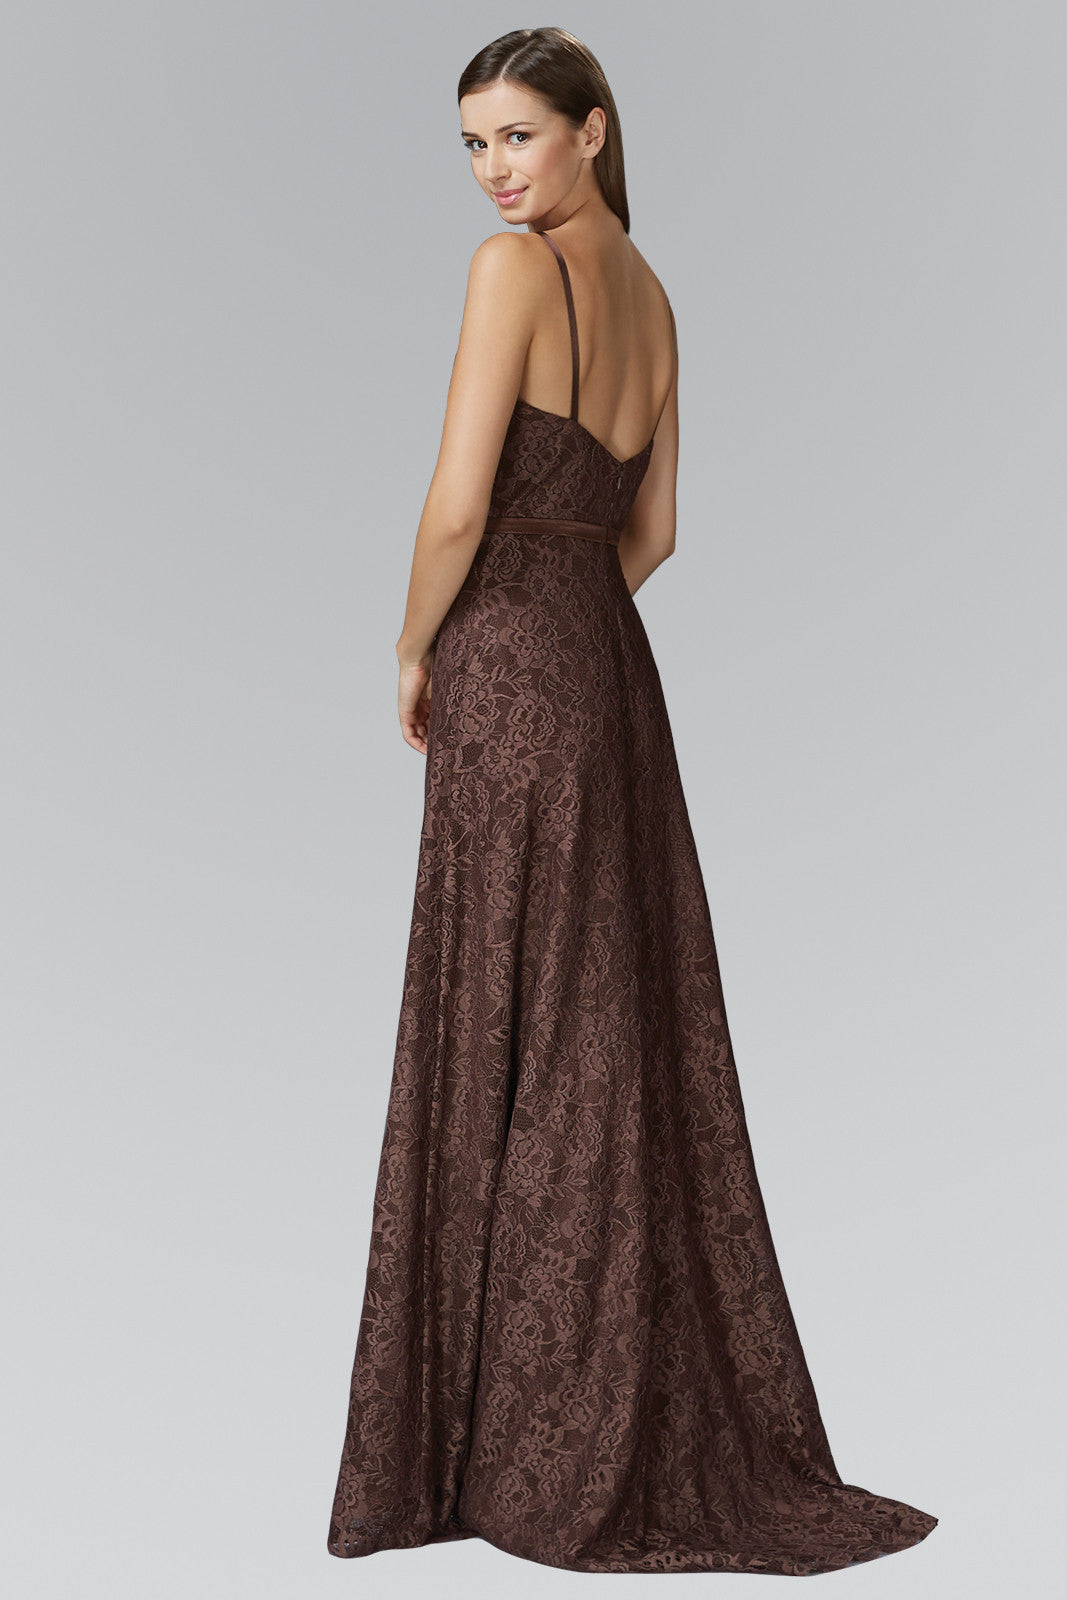 Lovely scoop neckline lace bridesmaid dress gl2170 simply fab dress lovely scoop neckline lace bridesmaid dress gl2170 simply fab dress ombrellifo Image collections